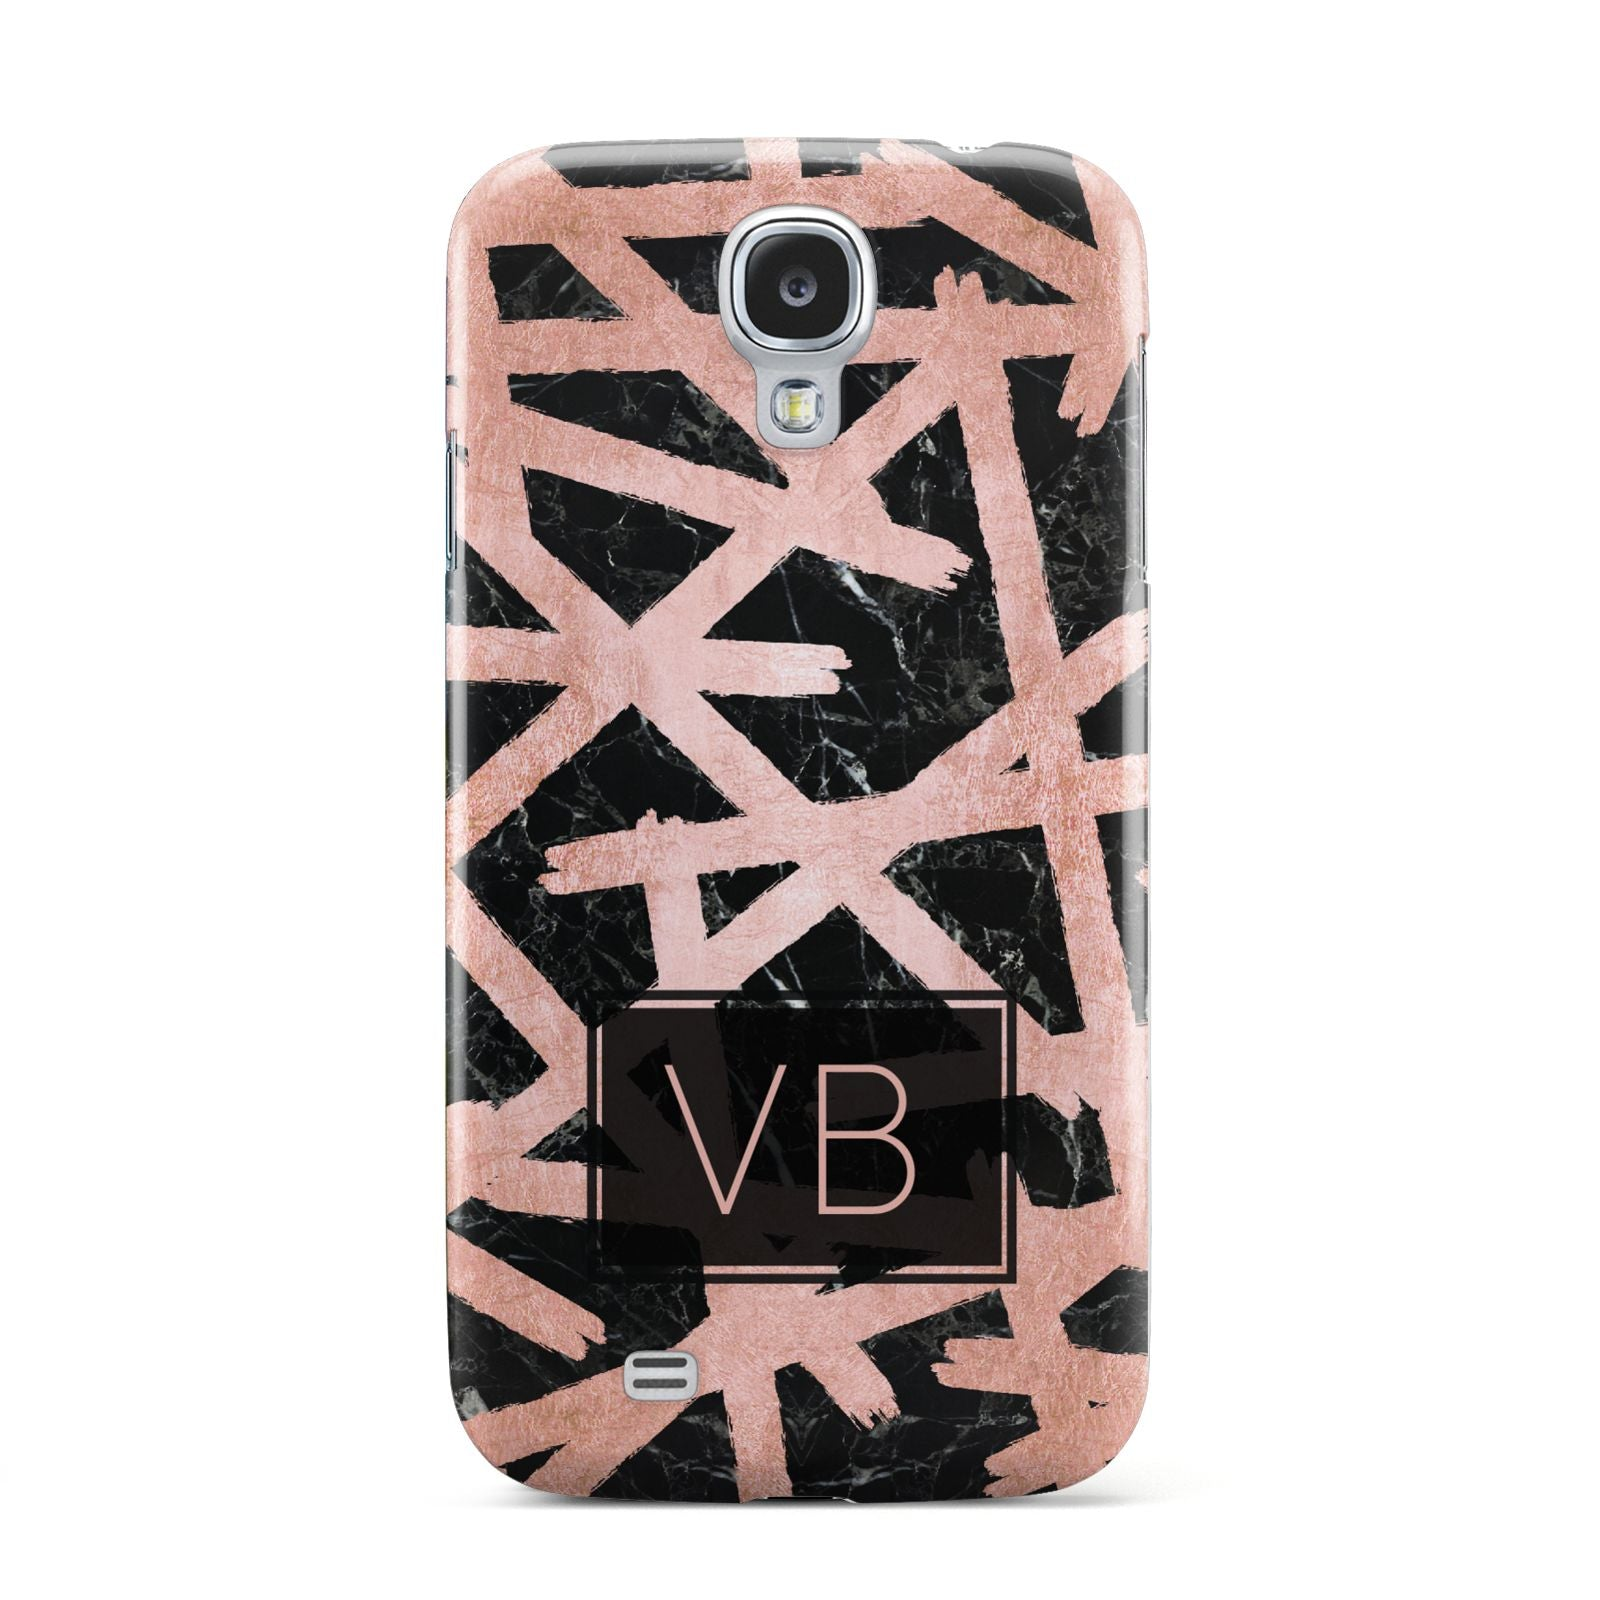 Personalised Rose Gold Effect Samsung Galaxy S4 Case